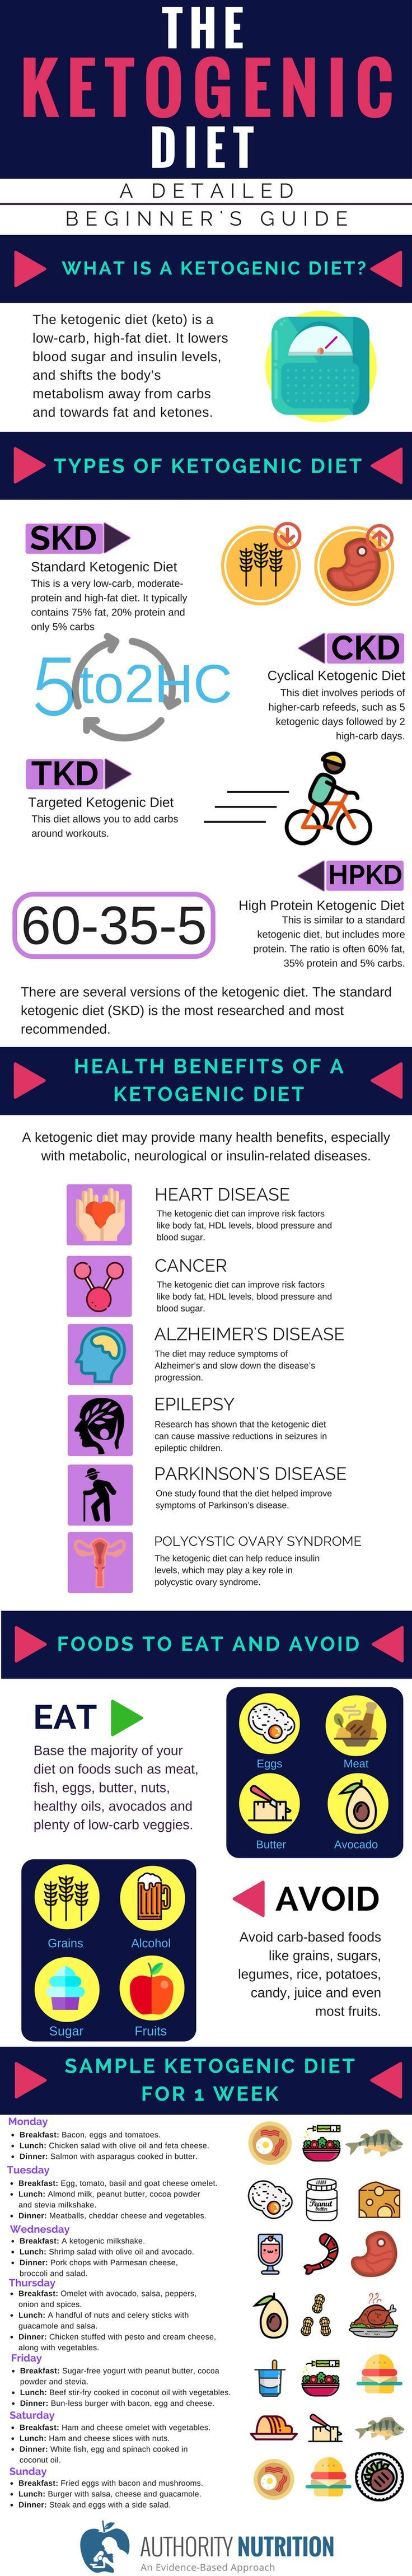 The ketogenic diet is a low-carb, high-fat diet that offers many health benefits. Over 20 studies show that this type of diet can help you lose weight and improve health. Ketogenic diets may even have benefits against diabetes, cancer, epilepsy and Alzheimer's disease. Learn more here: